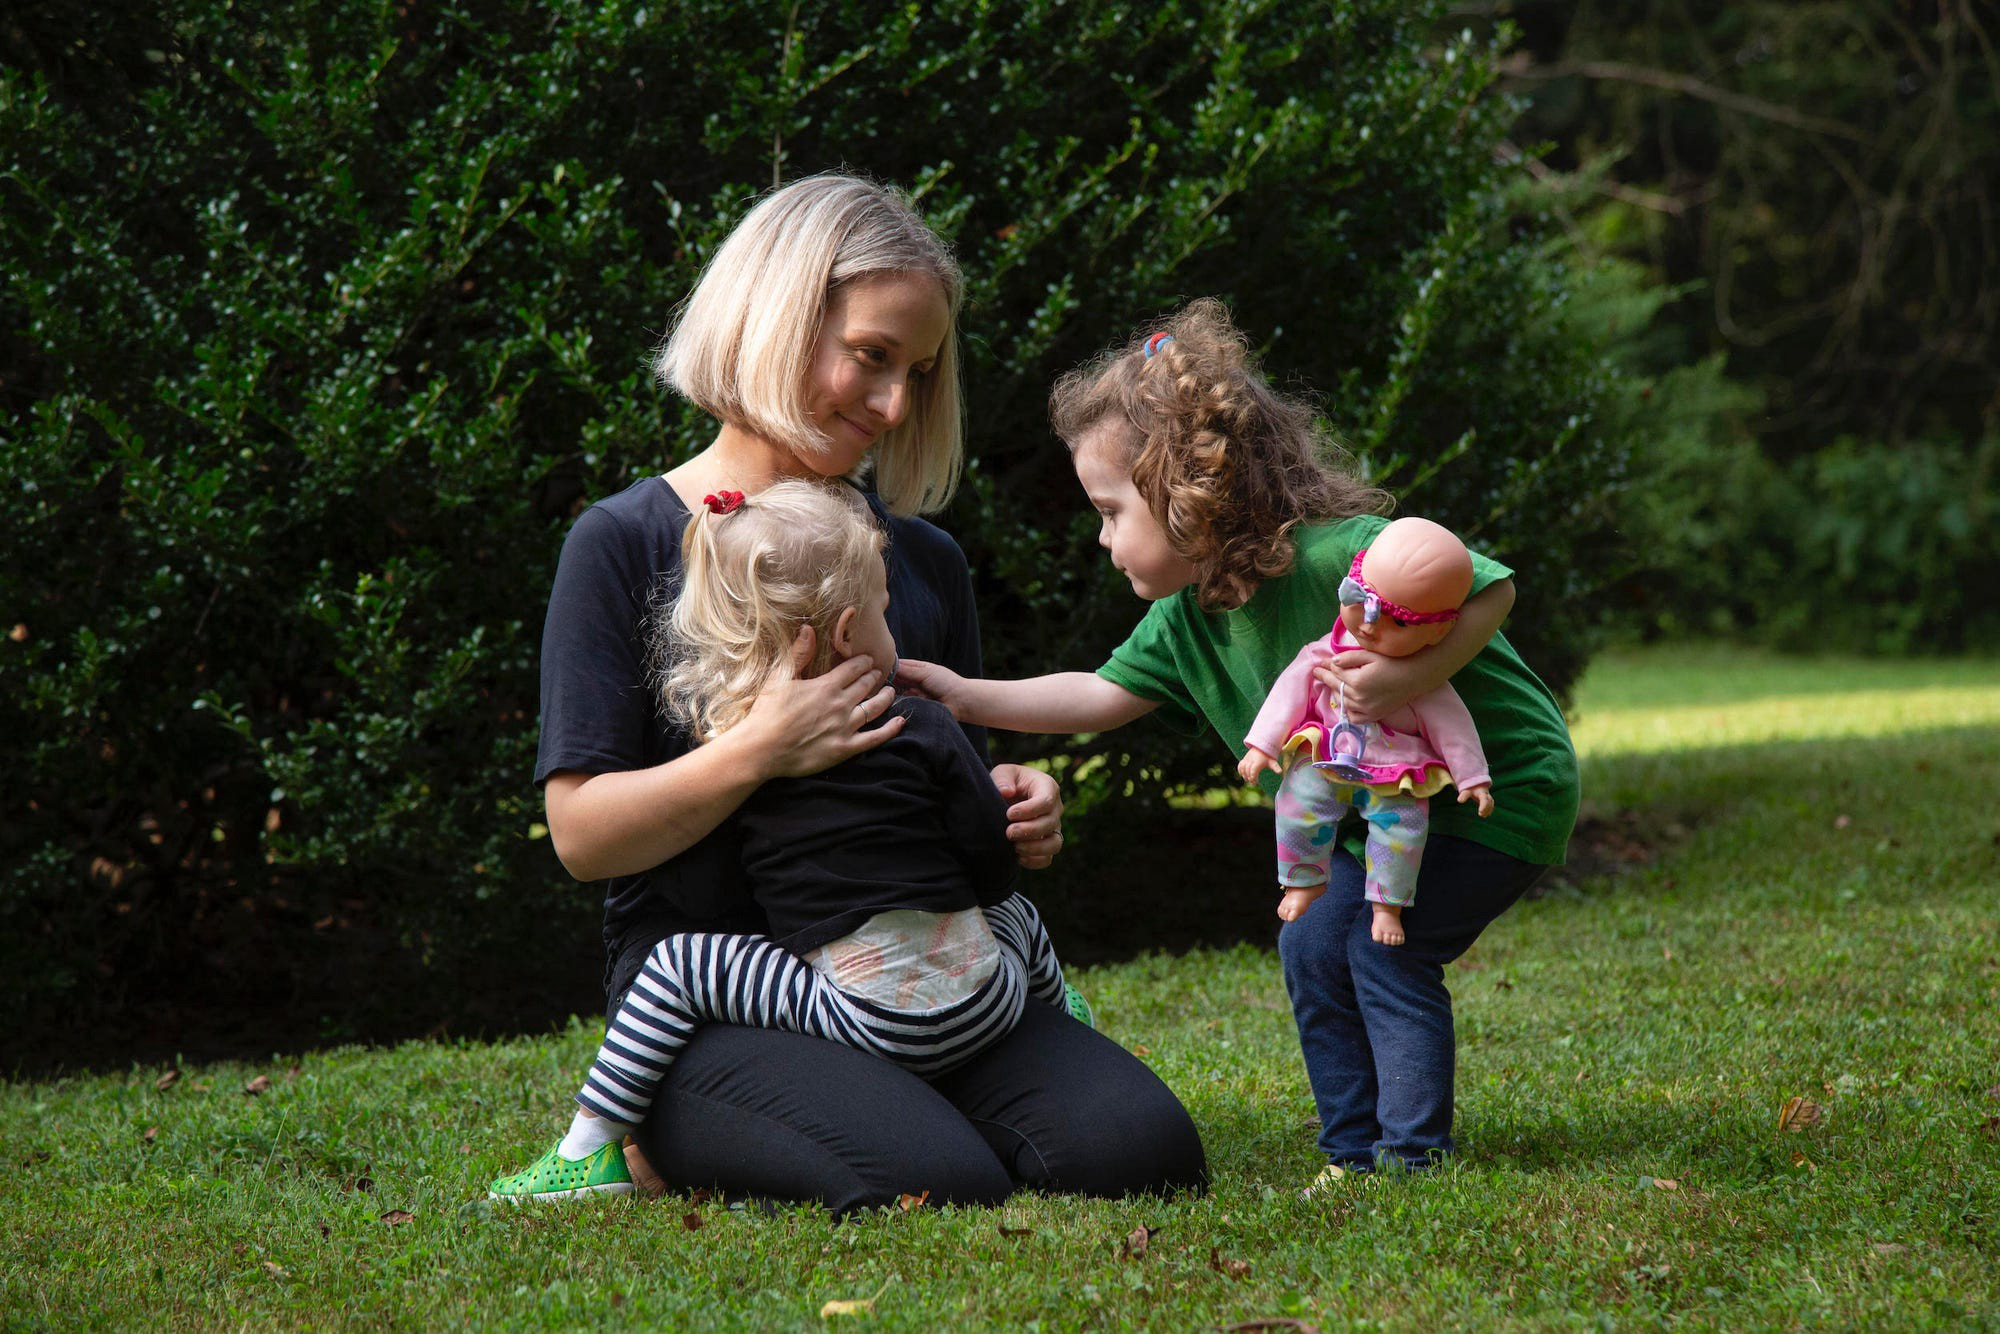 Ariane Audet playing with her two kids outside.